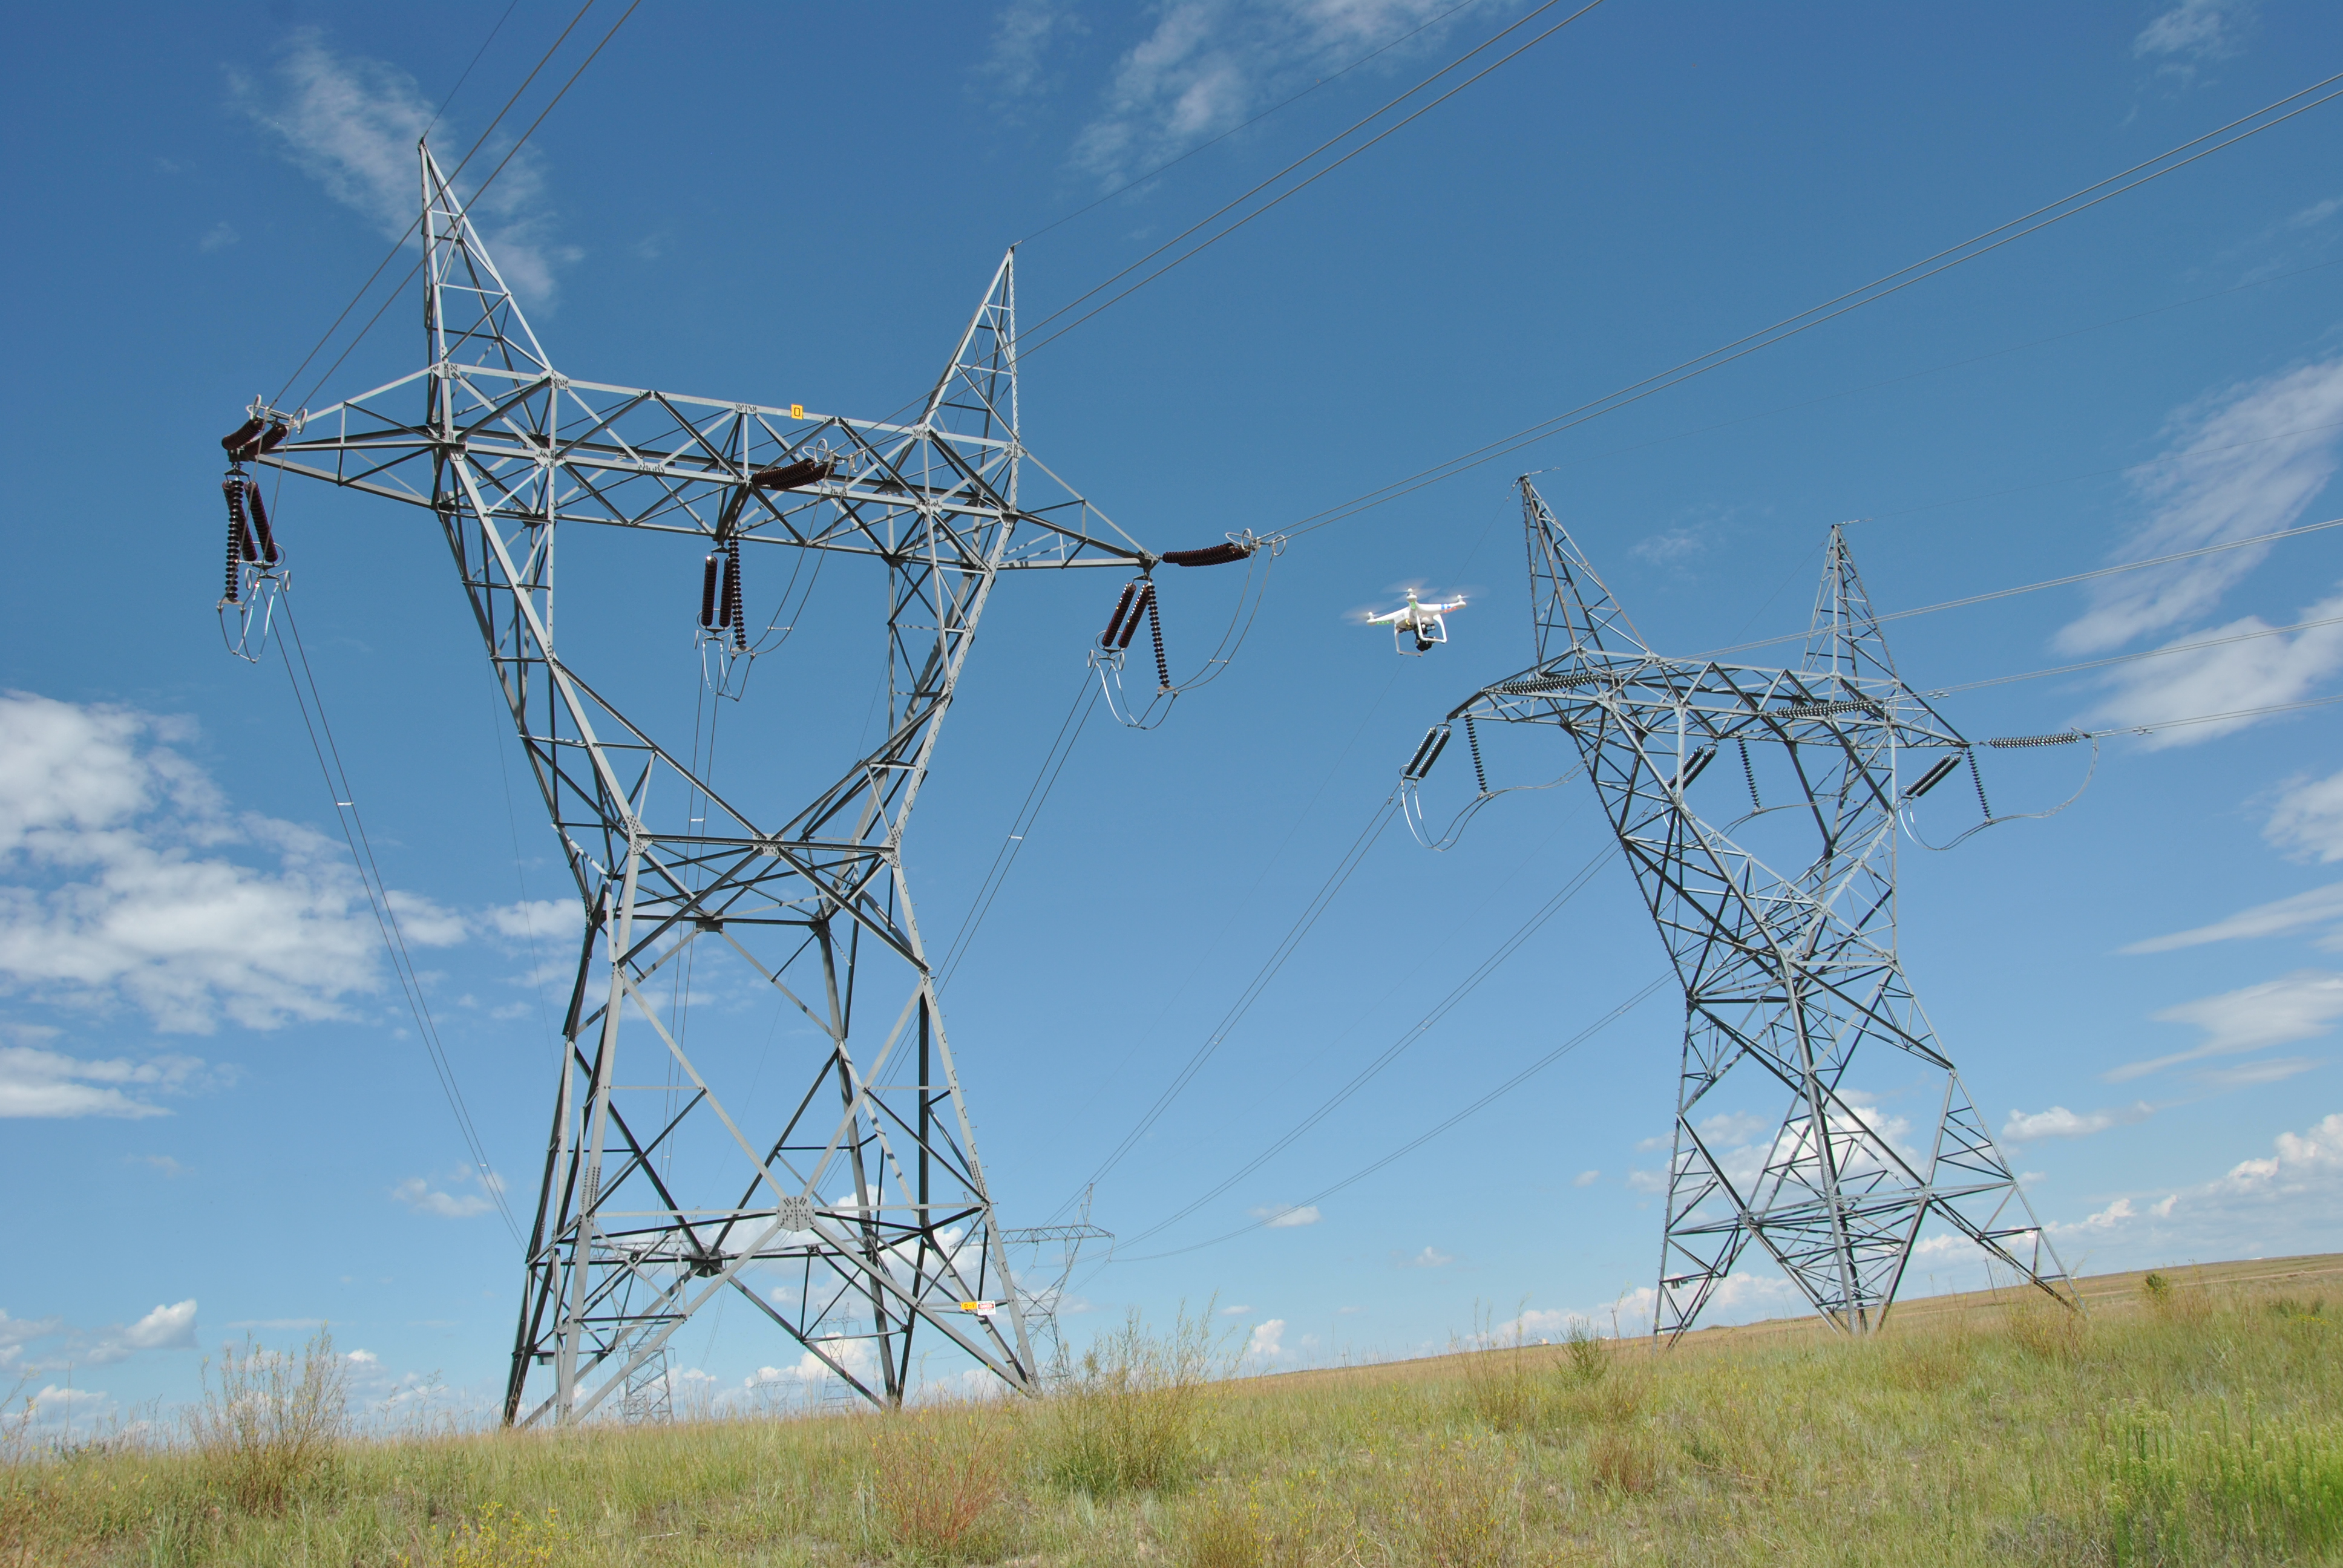 A small aerial remote control device flies in front of Western's Ault-to-Craig 345-kilovolt transmission line outside Ault Substation in Colorado, Aug. 6, 2014. The equipment has flown as close as two feet to energized lines without impact. (credits: Lisa Meiman / Western Area Power / Flickr Creative Commons Attribution 2.0 Generic (CC BY 2.0))